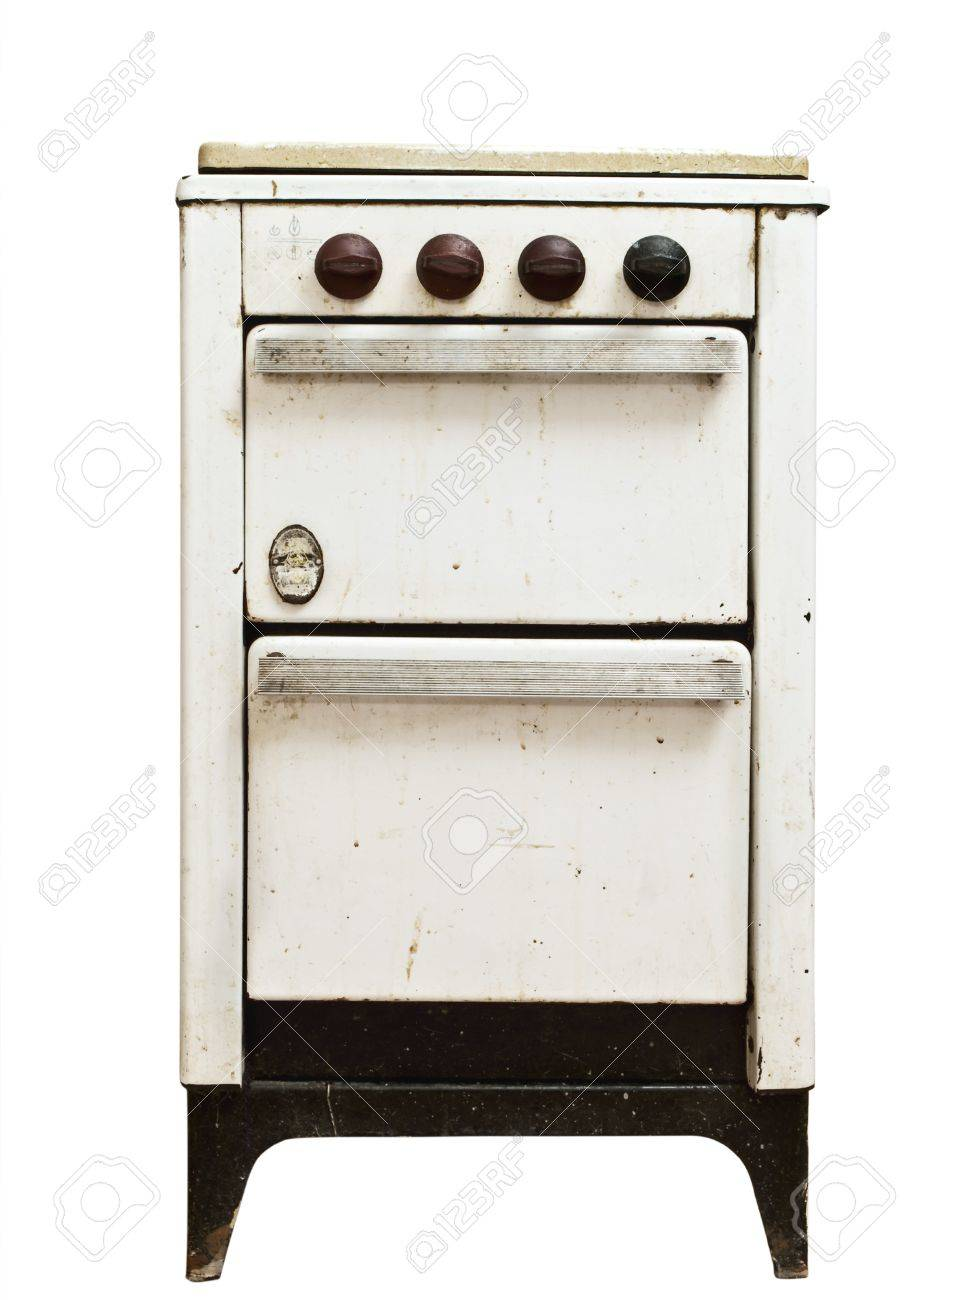 old vintage gas stove over white background Stock Photo - 7303227